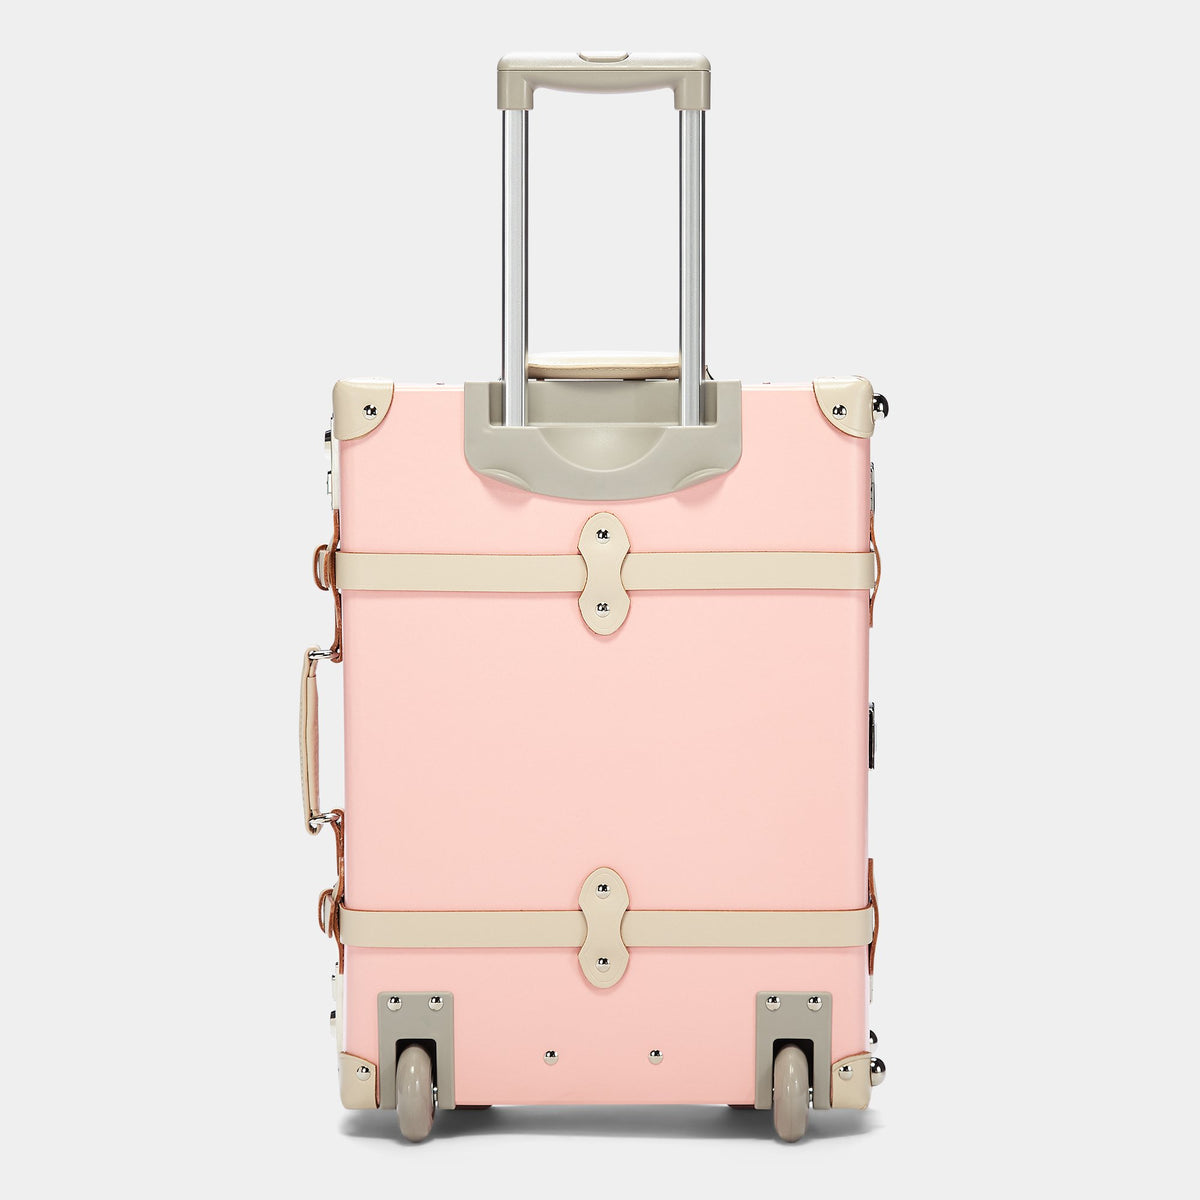 The Botanist Carryon in Pink - Vintage-Inspired Carry On Case - Exterior BAck with Extendable Handle